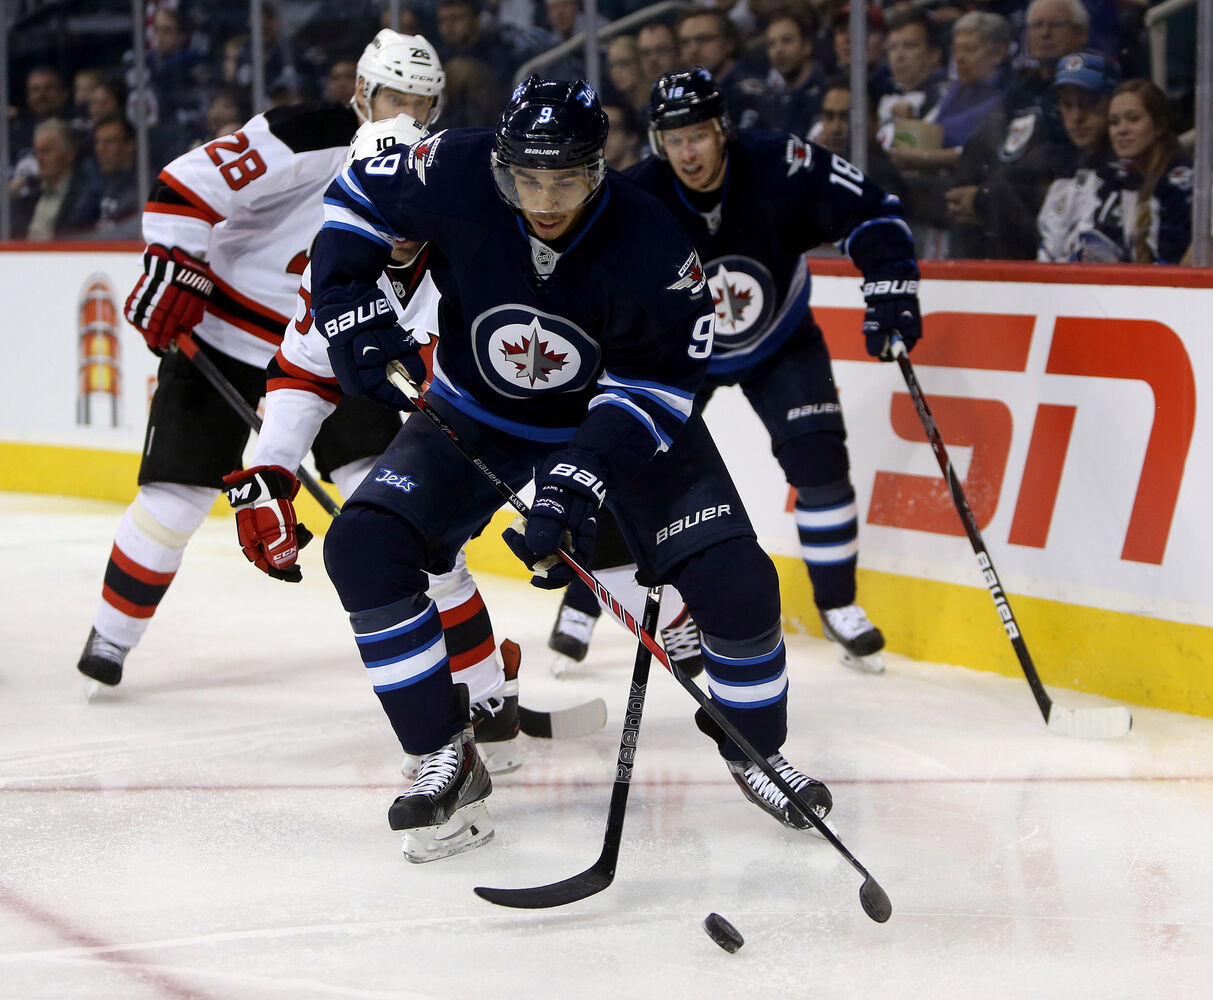 Evander Kane carries the puck the during second period.